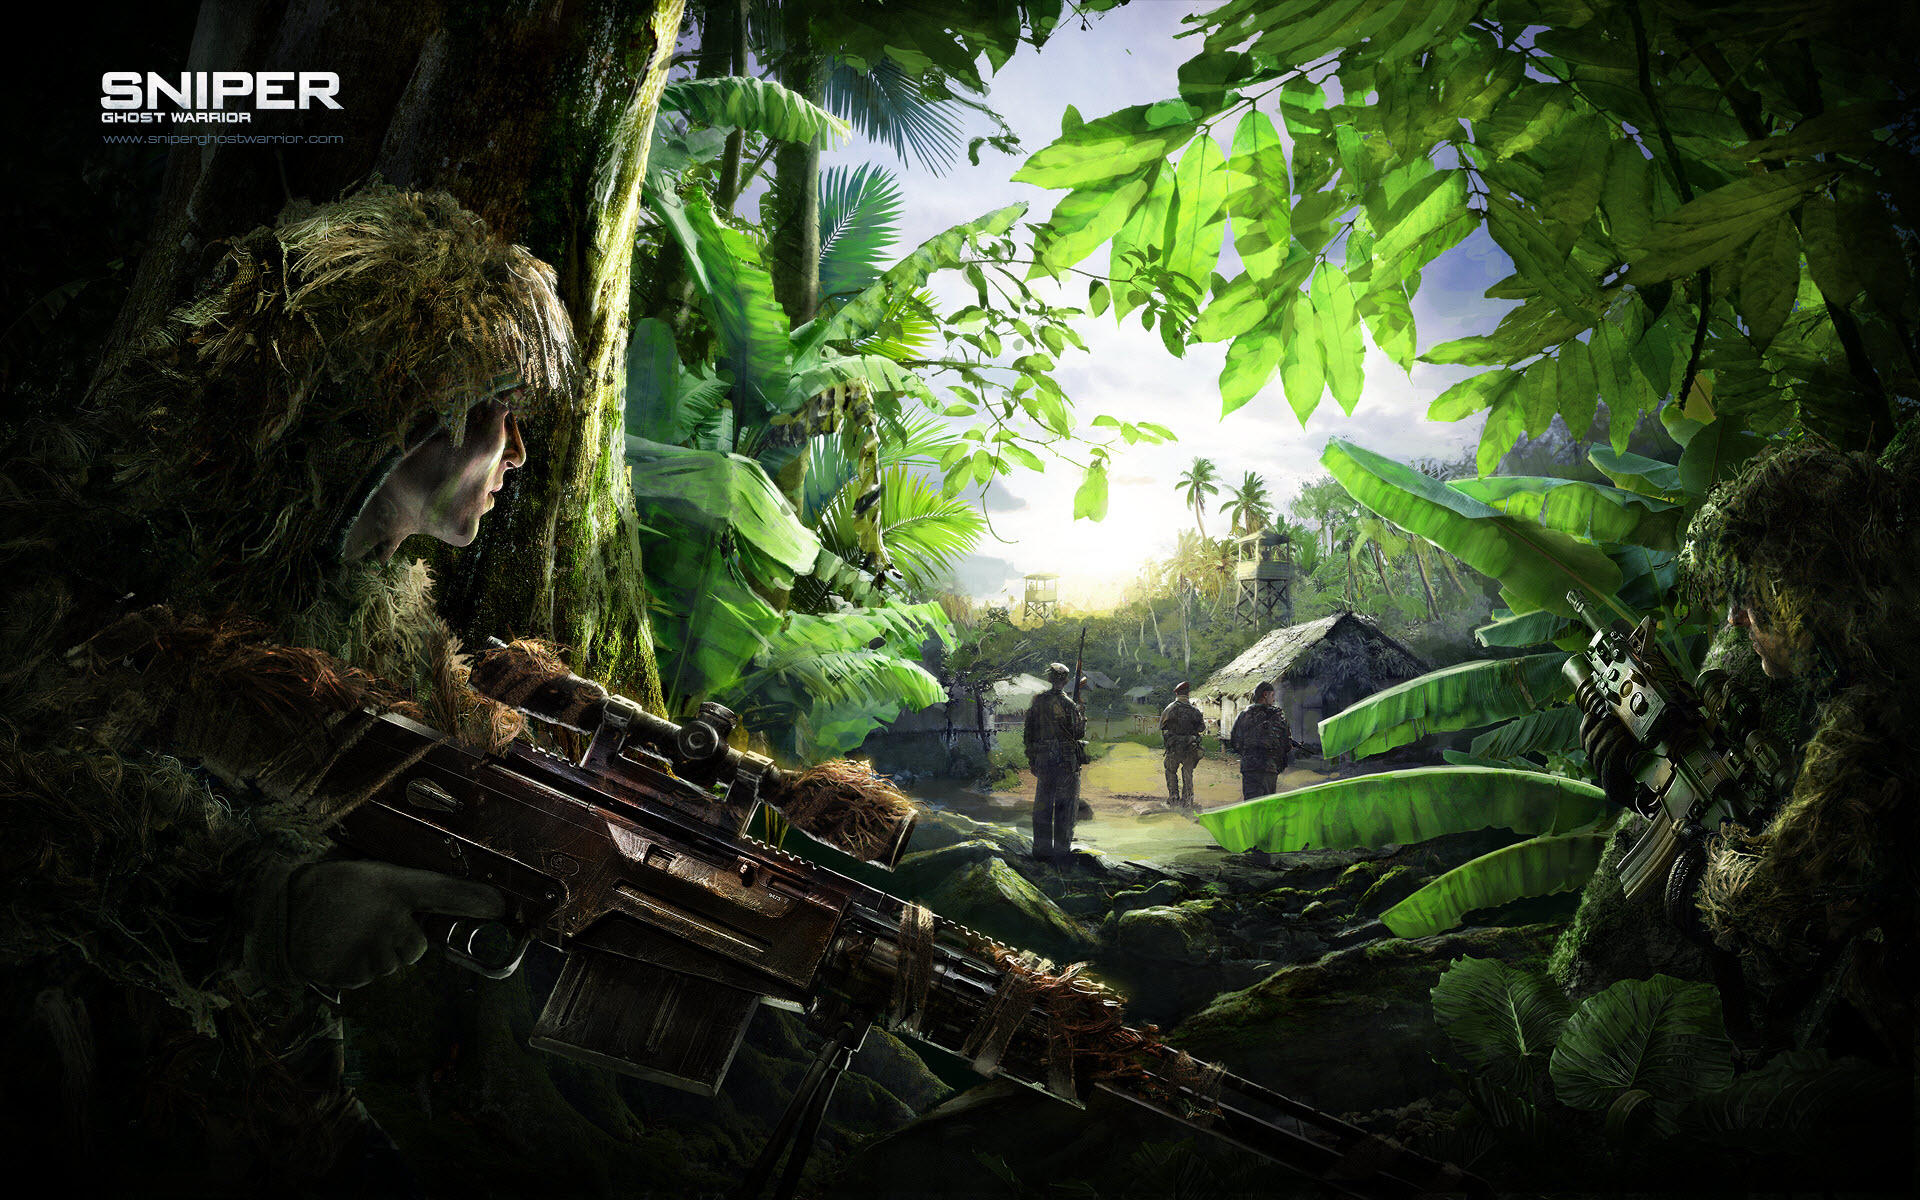 Sniper Ghost Warrior Wallpapers HD Wallpapers 1920x1200